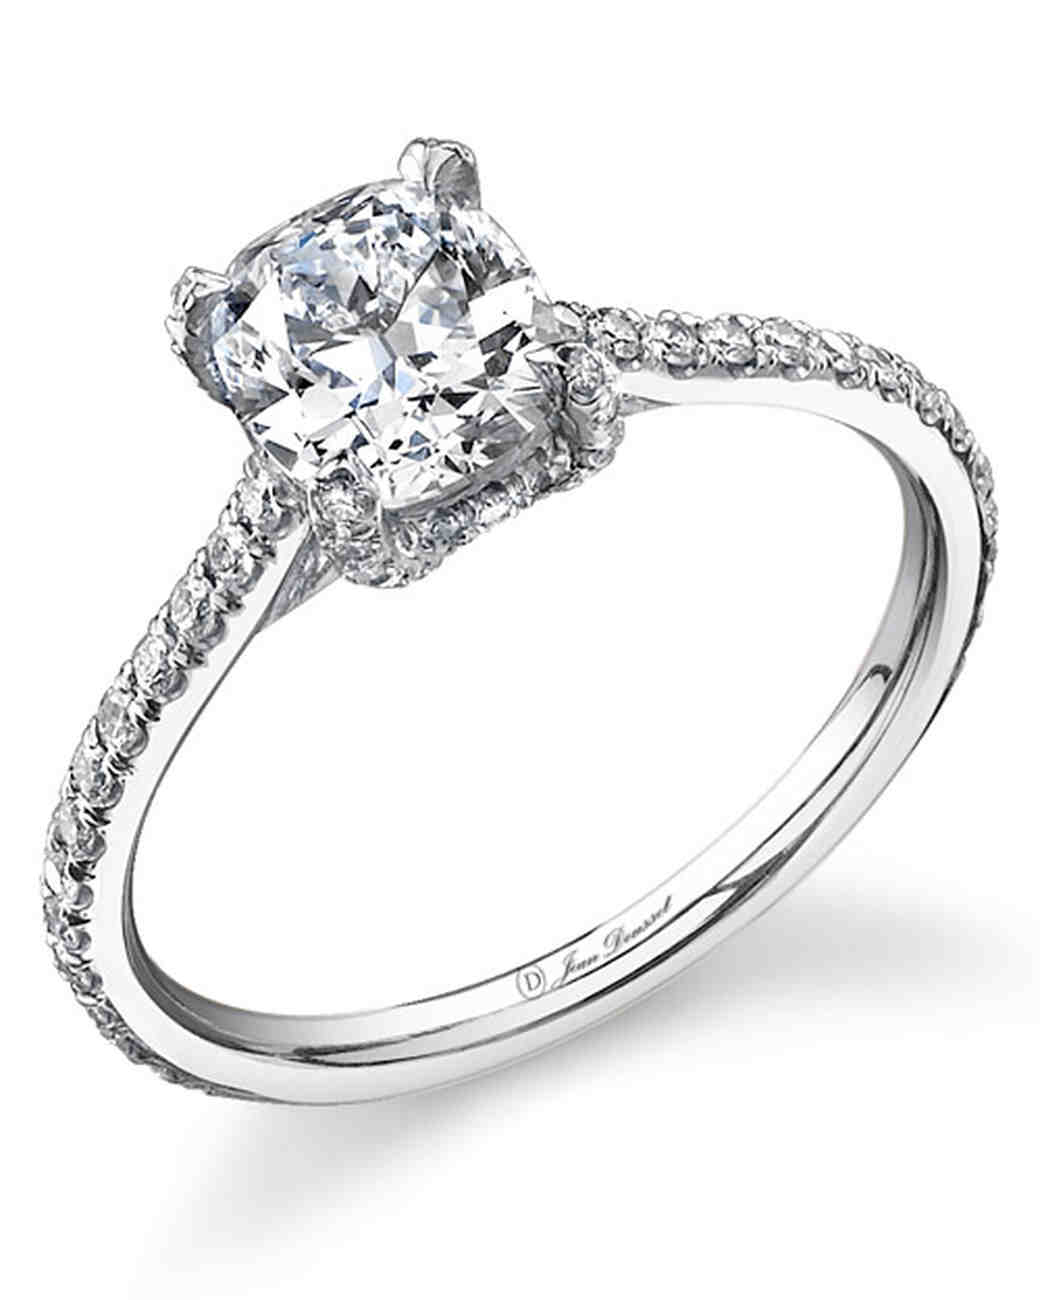 Cushion-Cut Engagement Ring from Jean Dousset